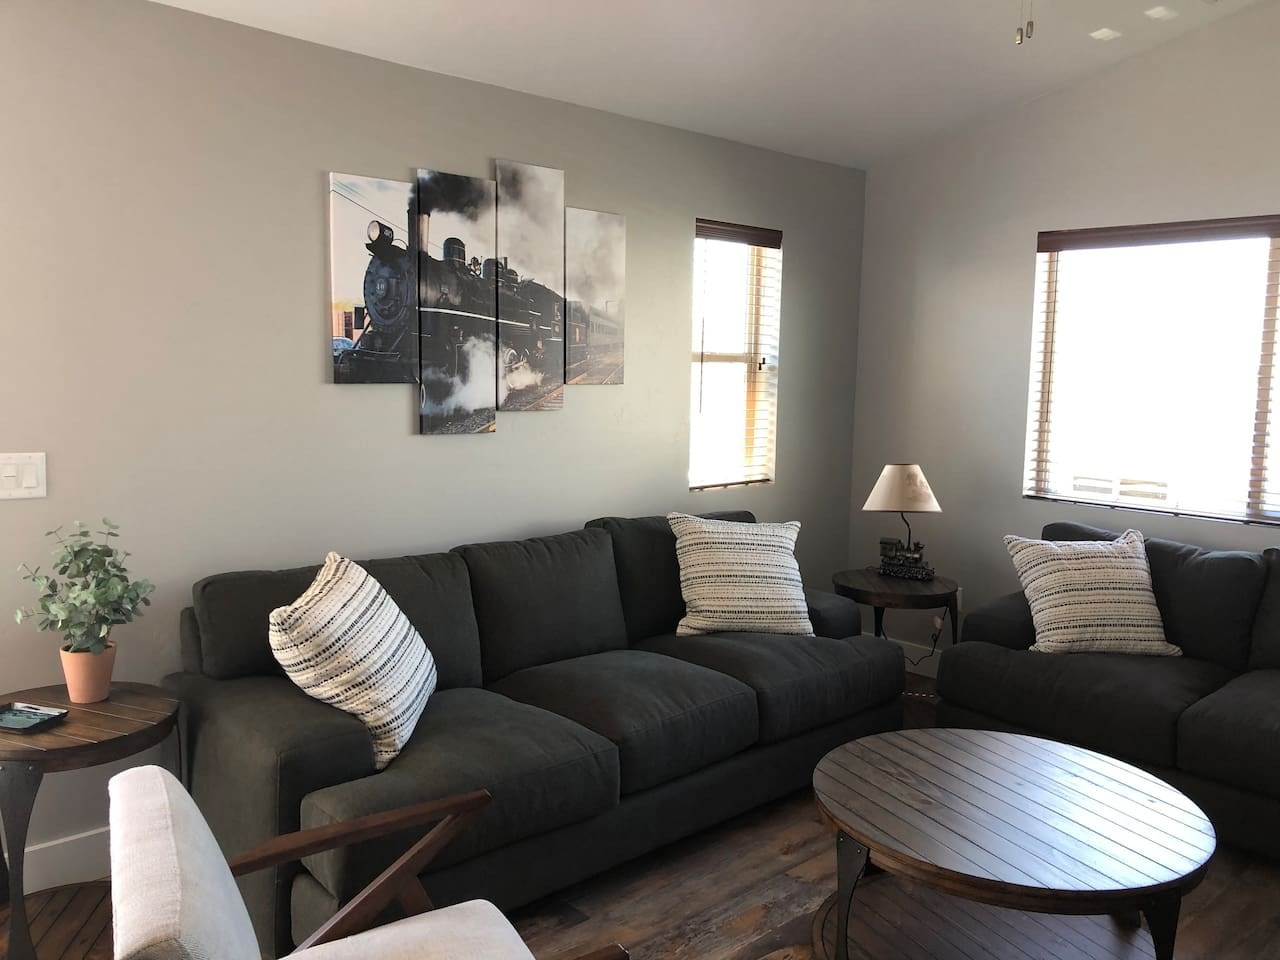 Comfortable living space